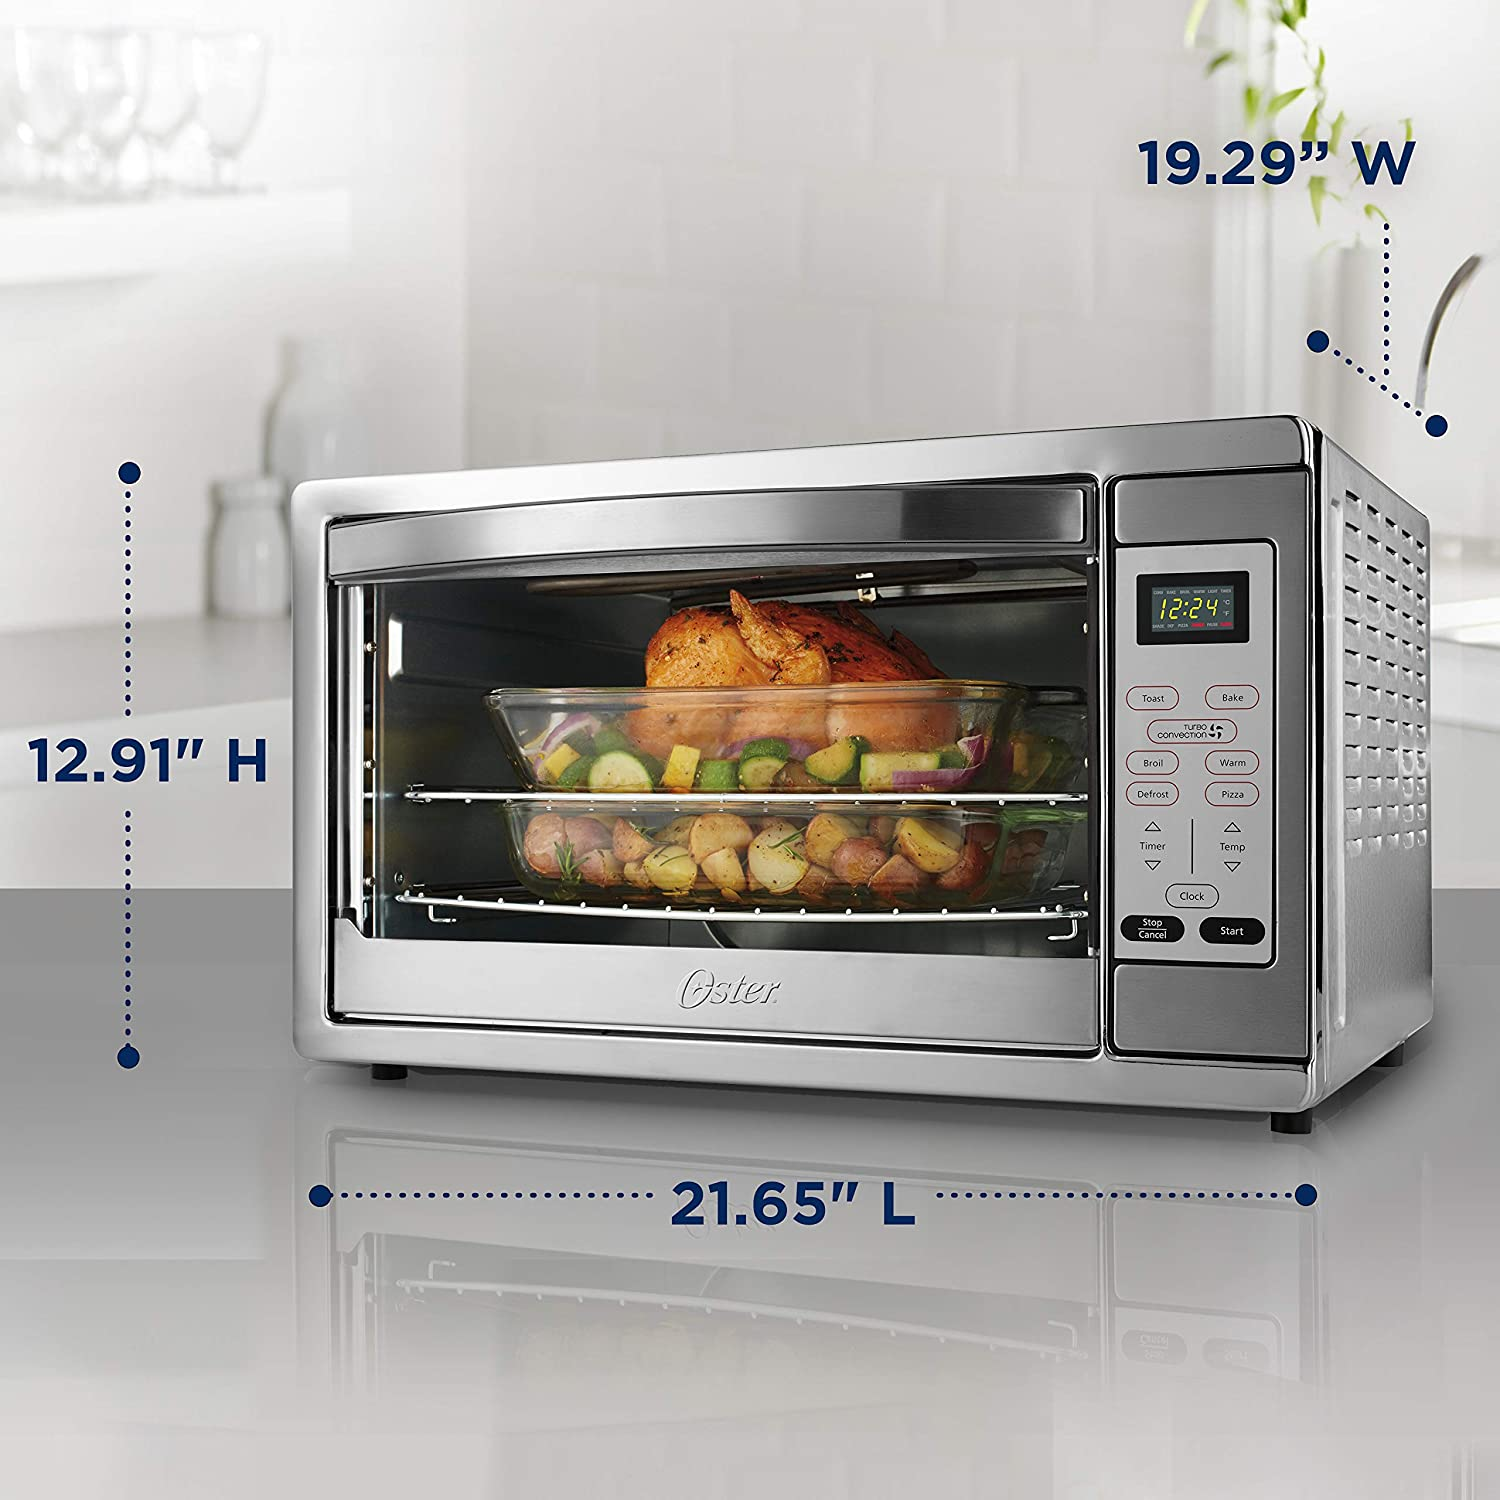 Best Electric Oven for Baking of 2019: Buyer Guide and Reviews